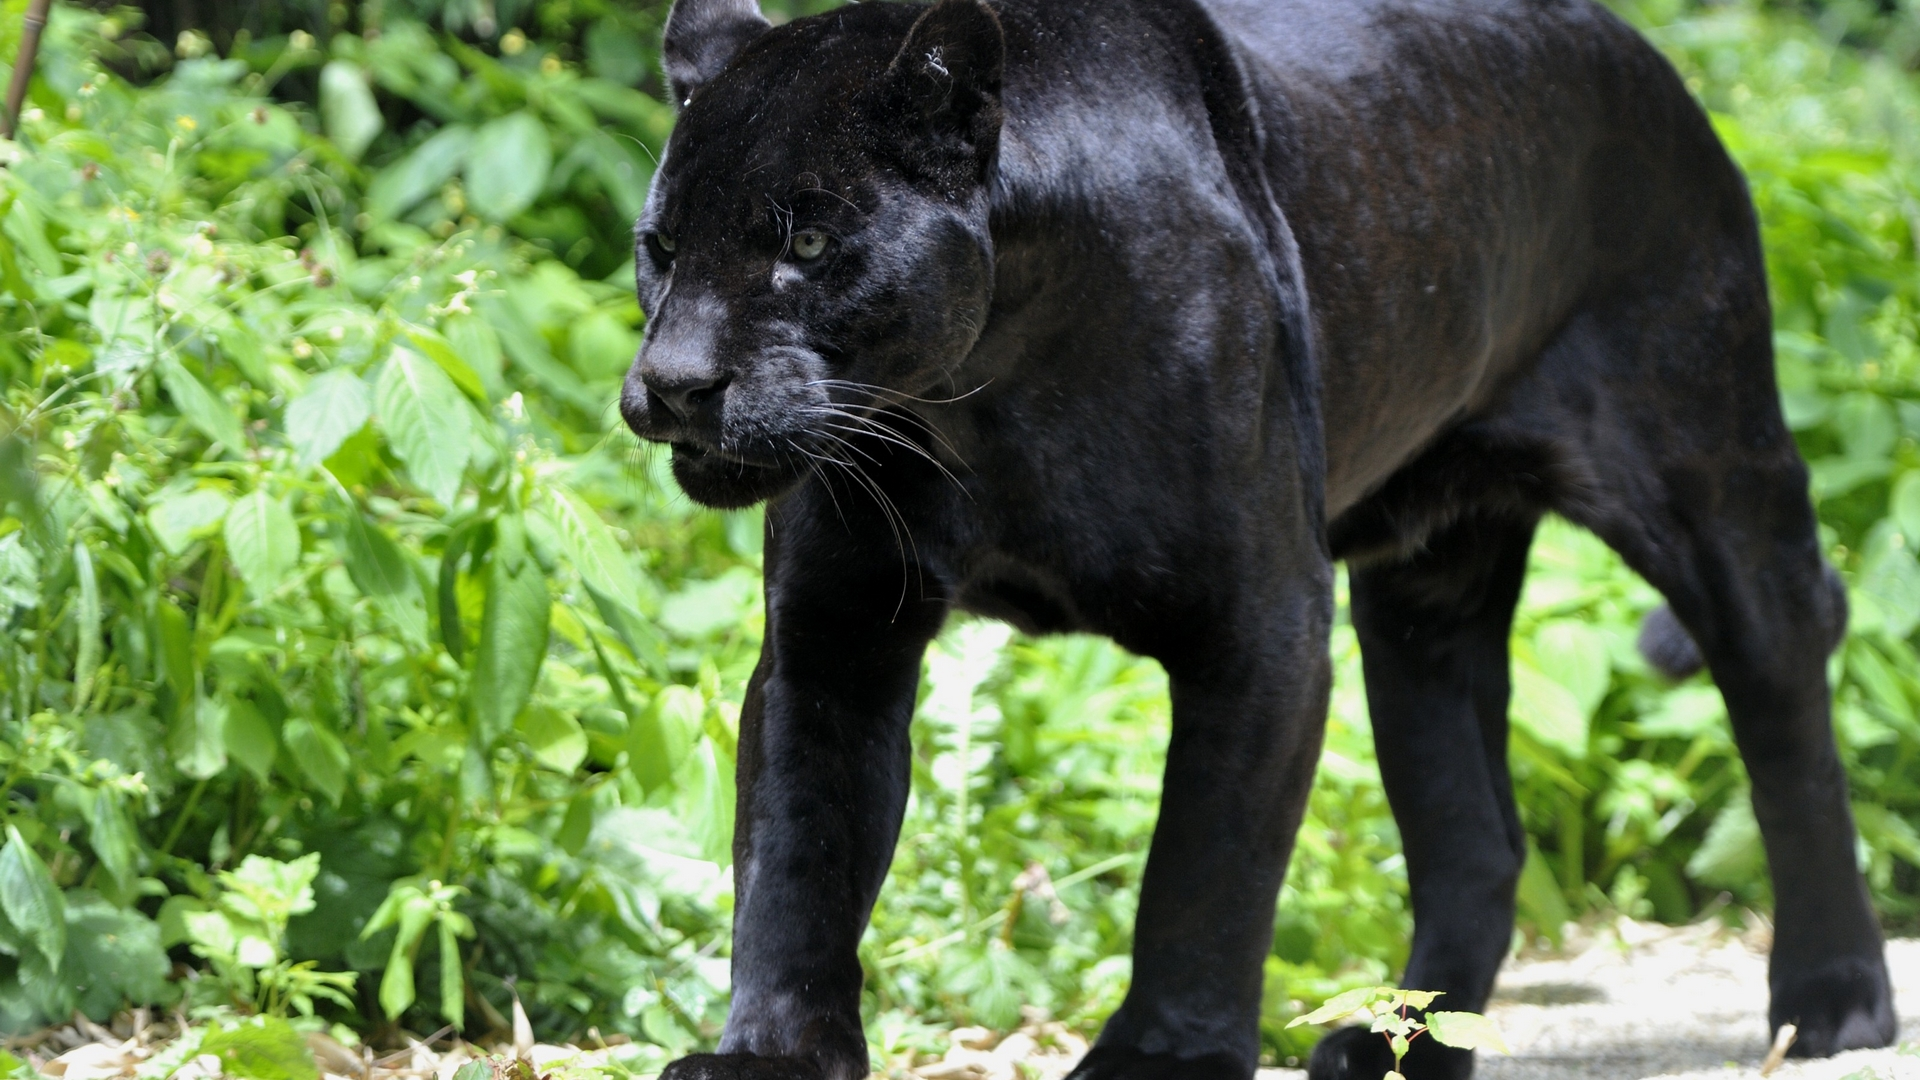 Wallpapers Animals Black Panther Wallpaper 1920x1080